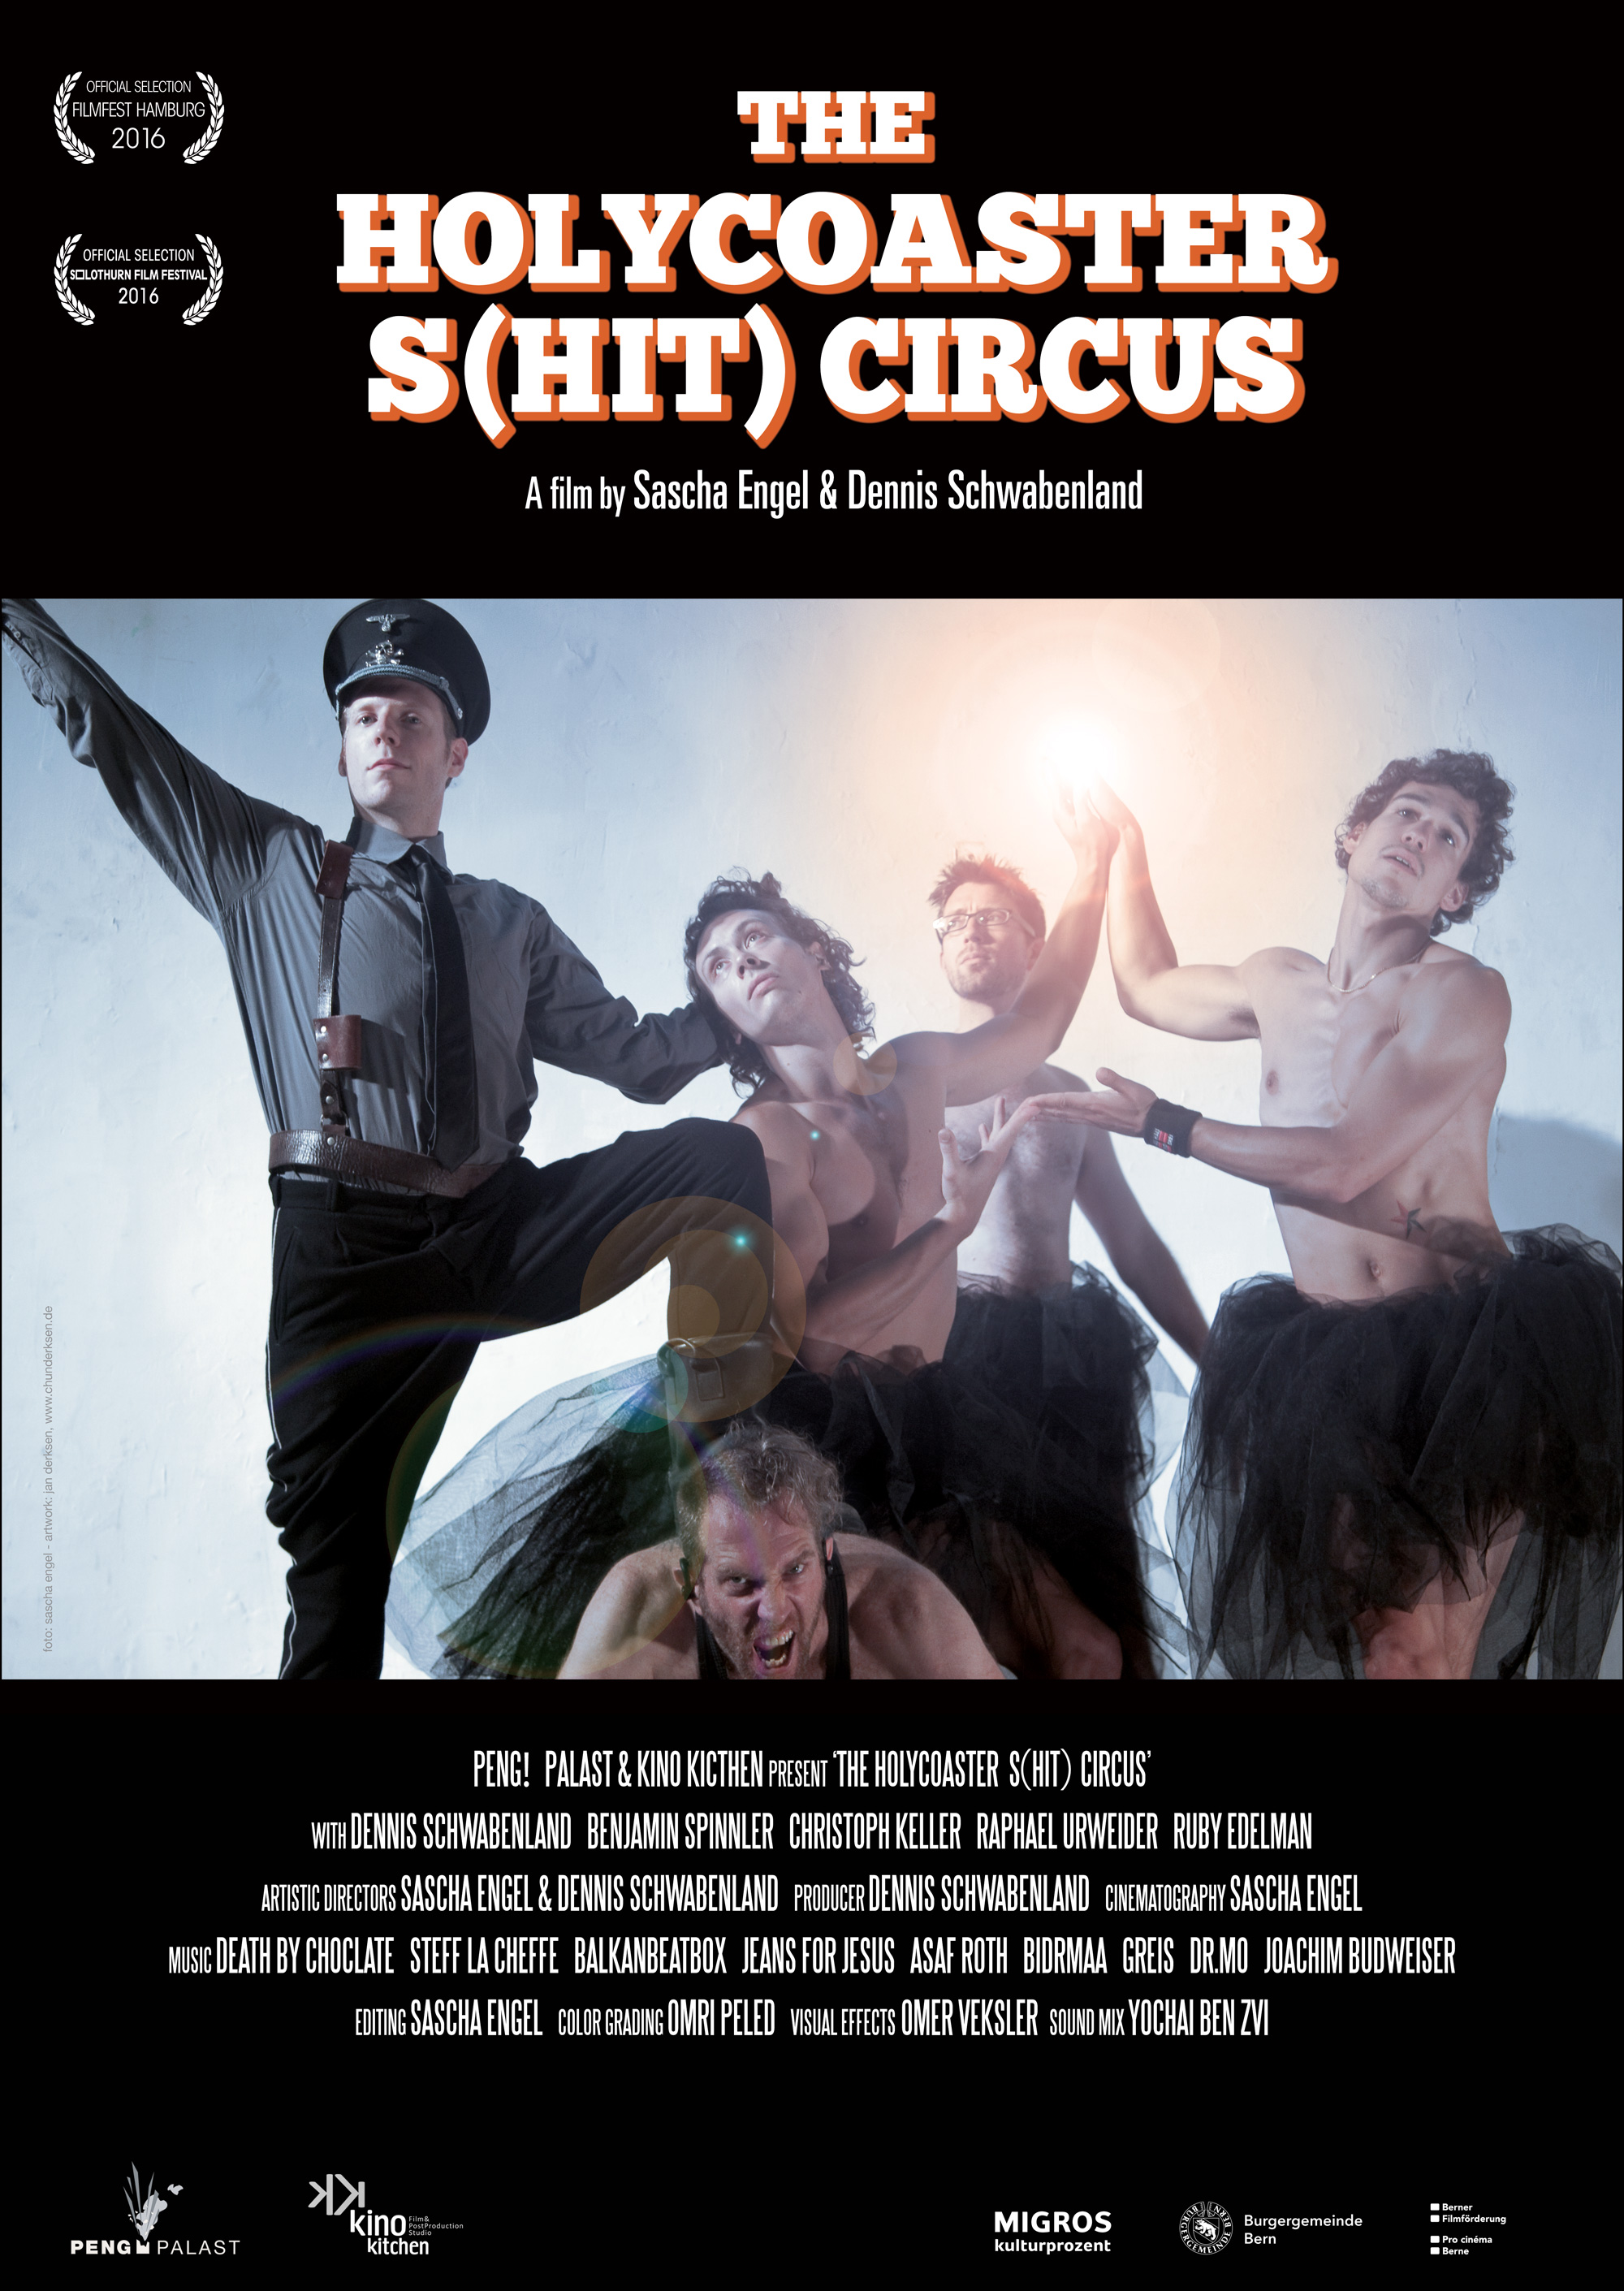 The Holycoaster S(HIT) Circus Poster